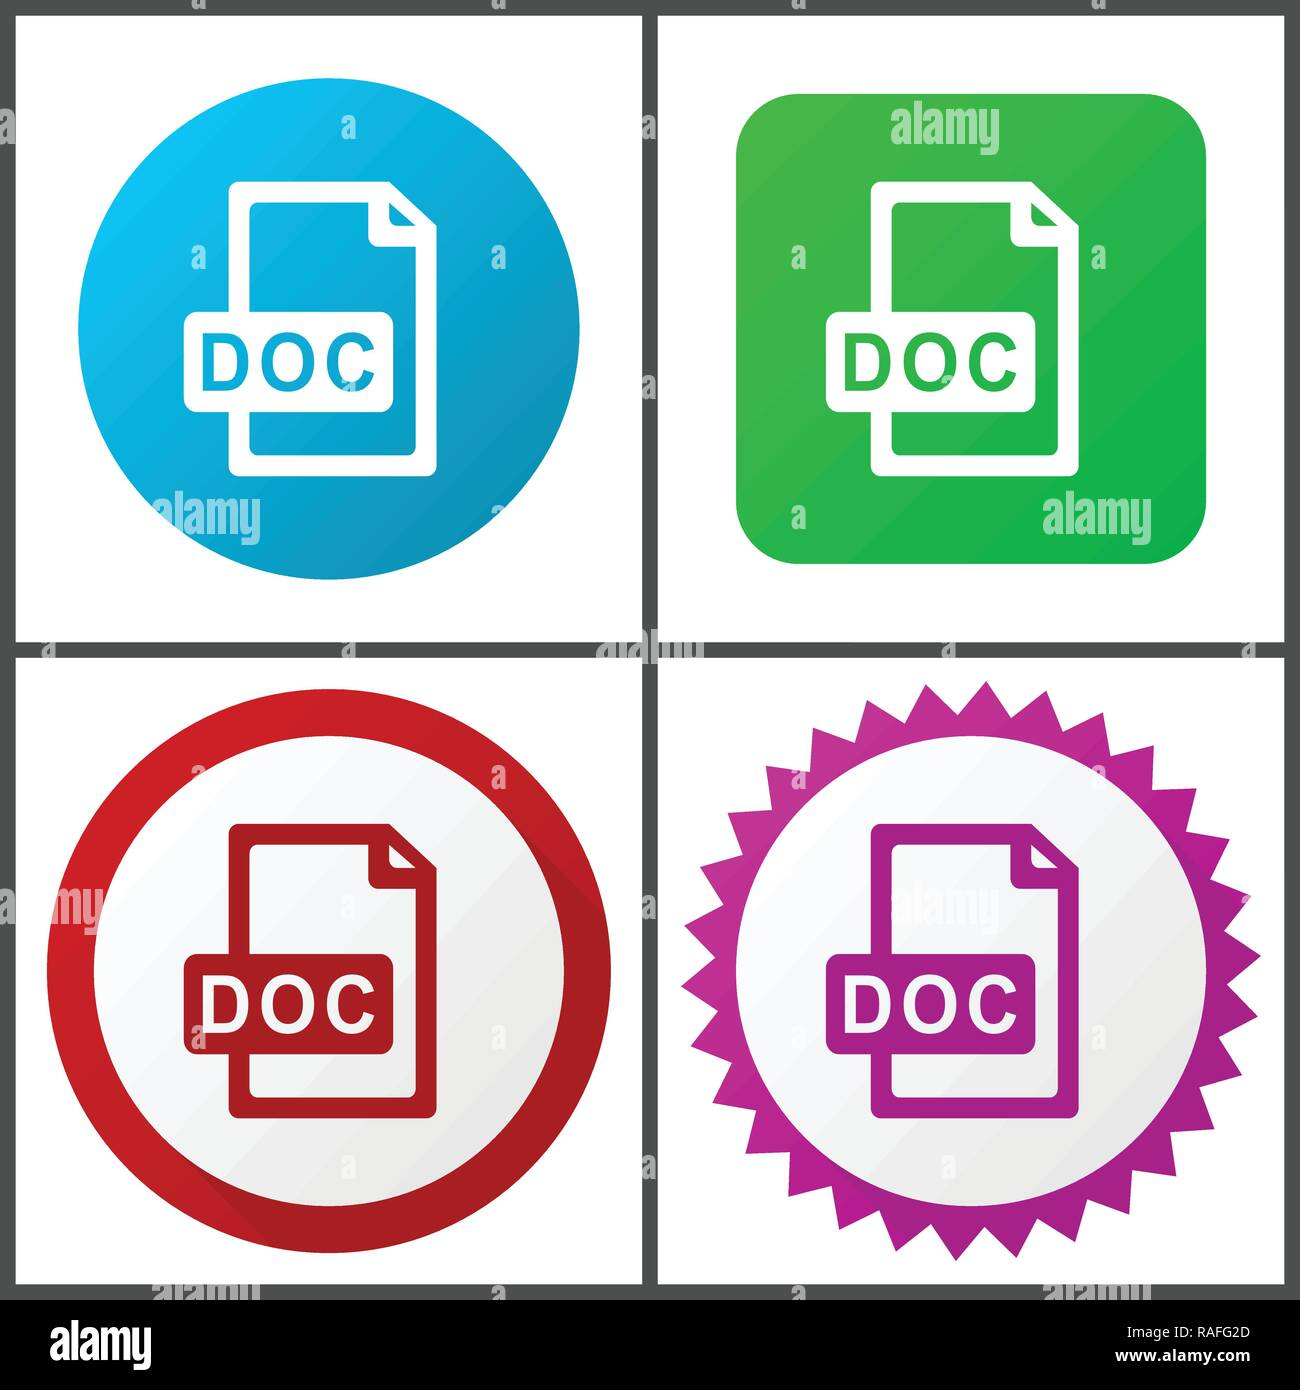 Doc file vector icon set. Flat design web icons in eps 10. Colorful internet buttons in four versions. - Stock Vector